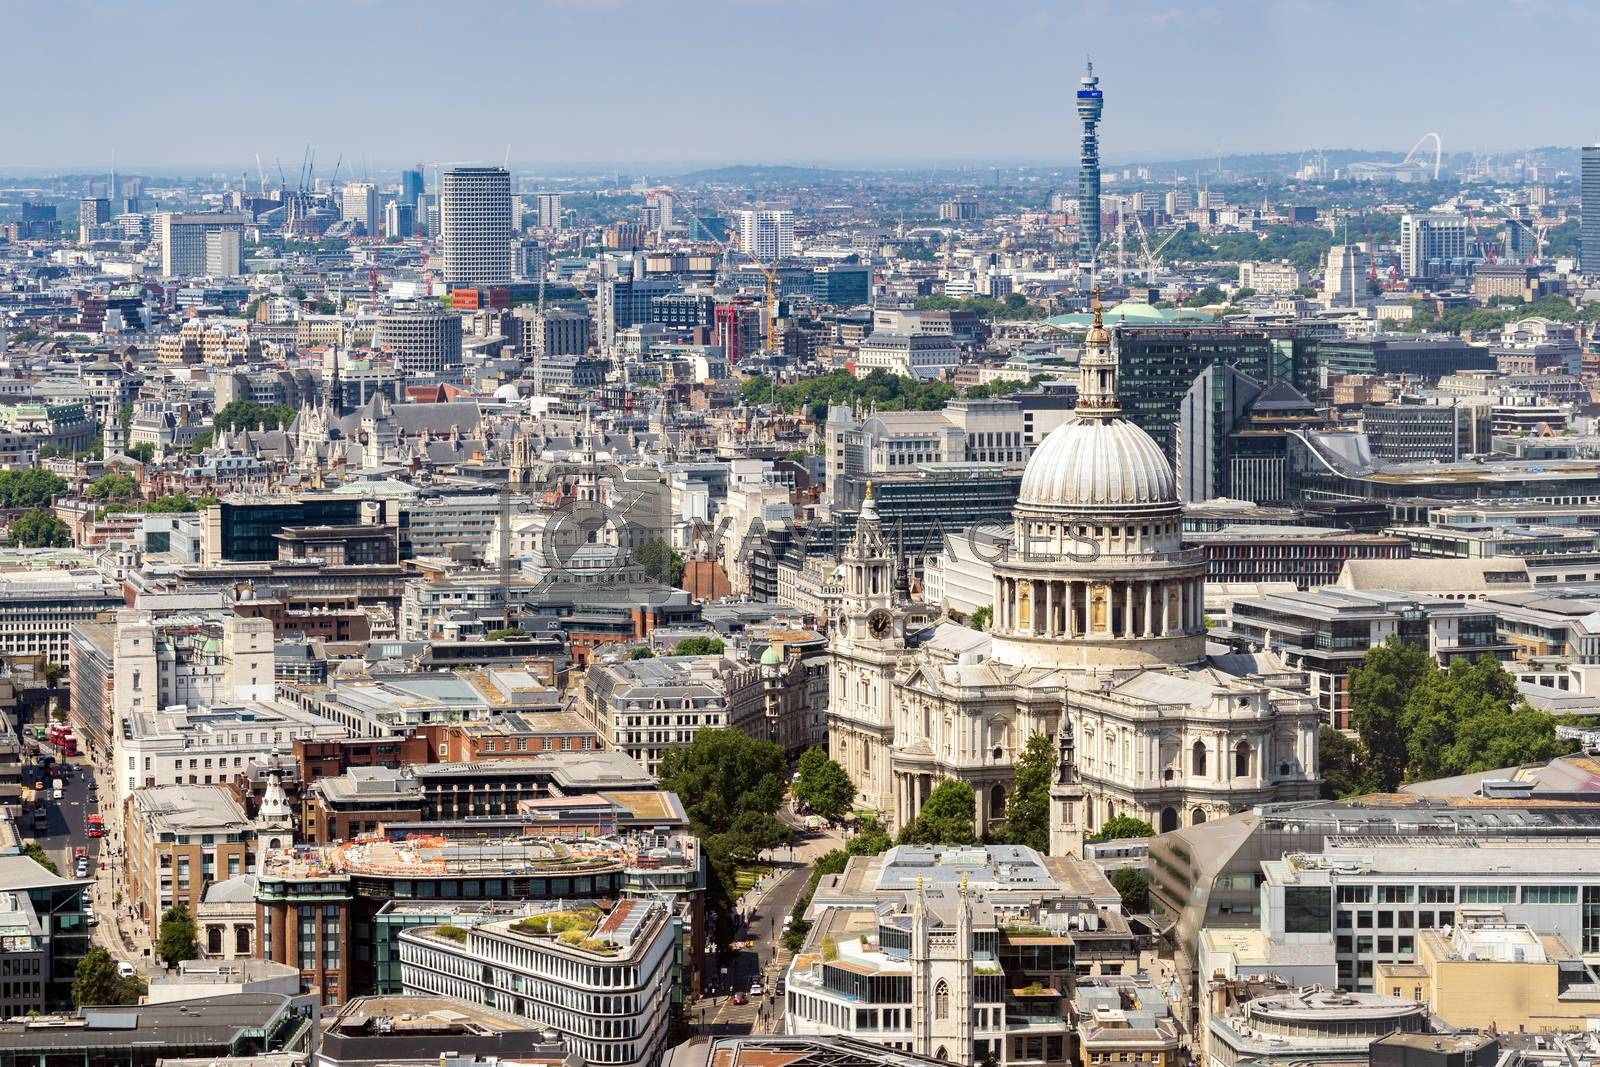 St paul cathedral London UK. Aerial View